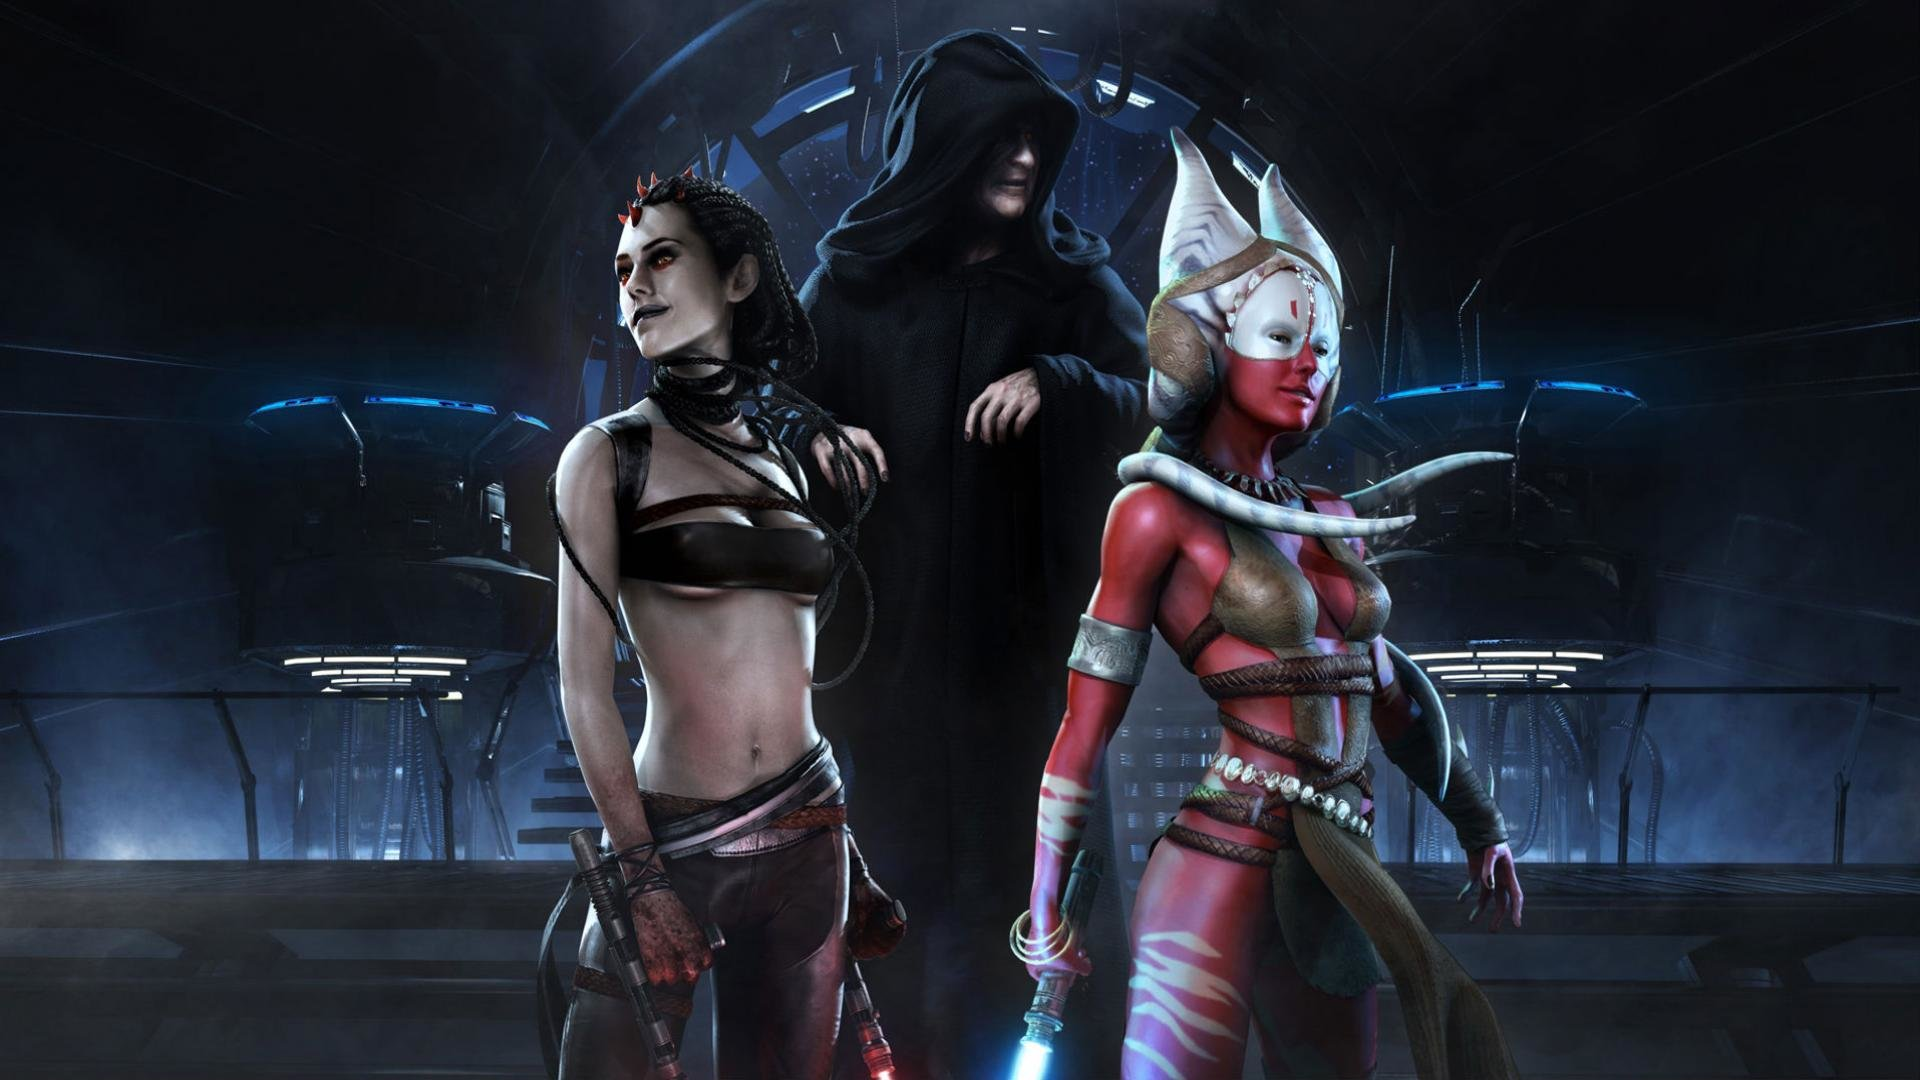 star wars the old republic background hd 1920x1080 105951